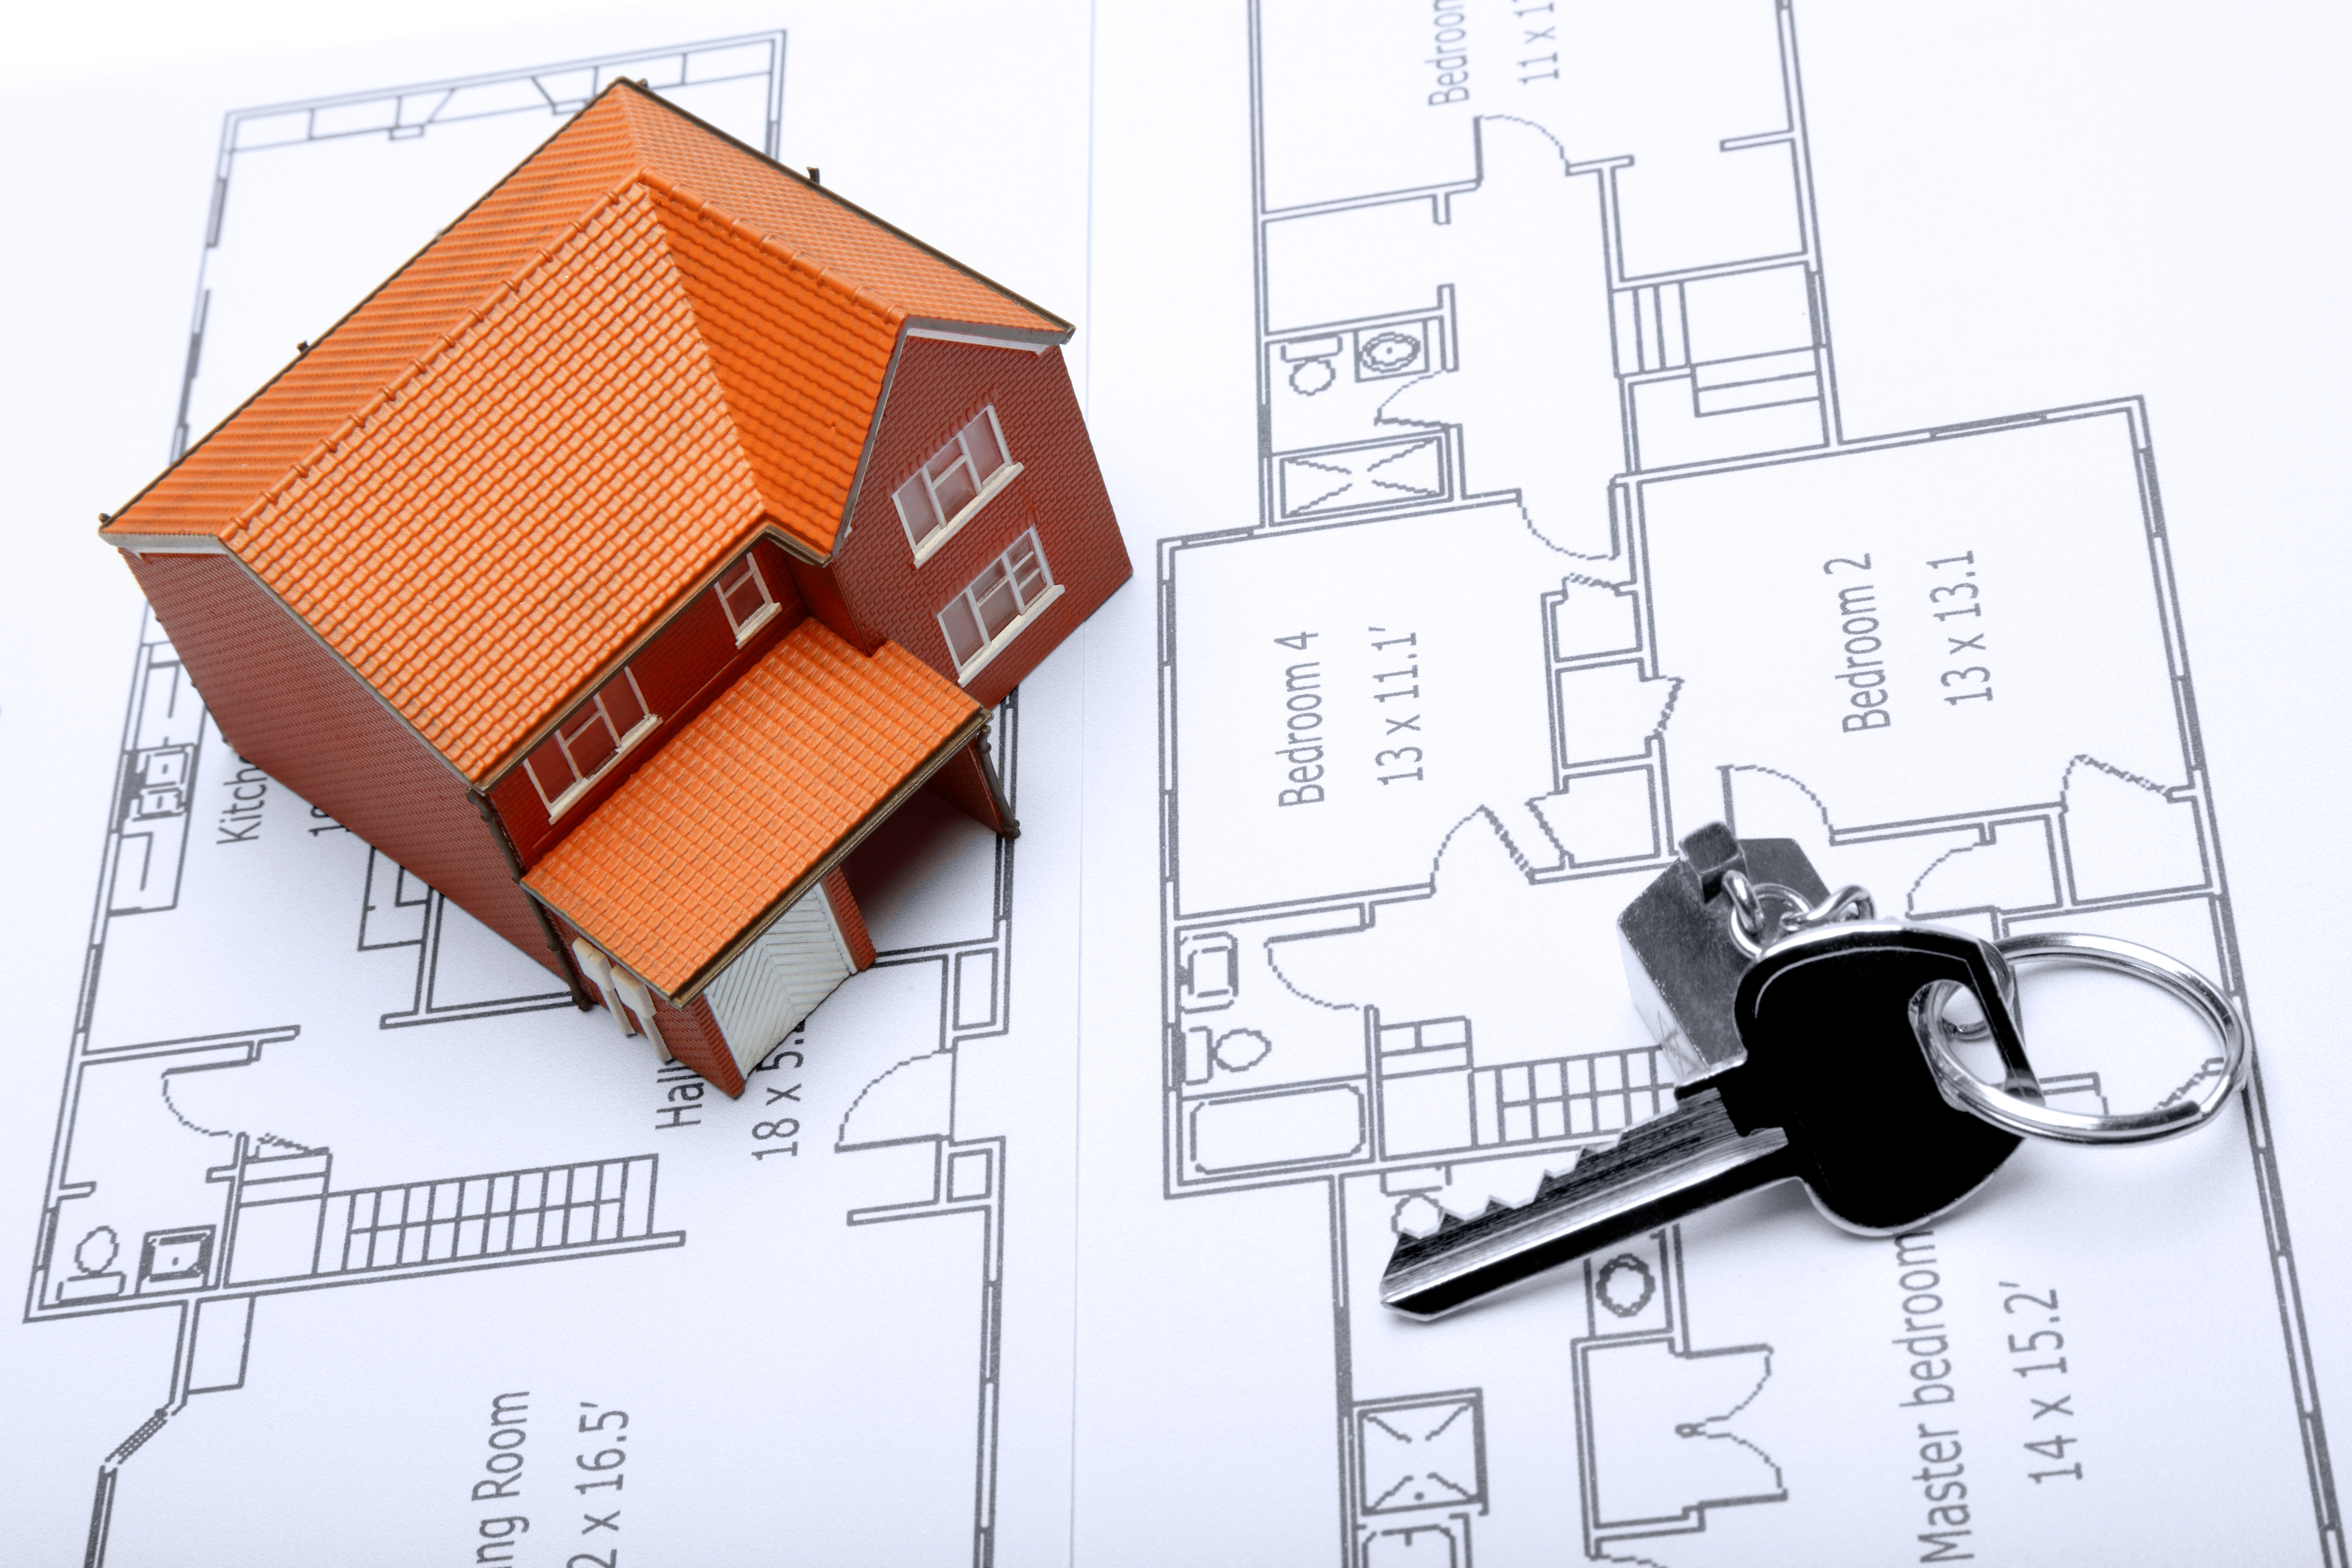 Our Floor Plans Come In Various Specifications And By Delivering Our Floor  Plans In Any Format You Require, We Help You Achieve The Best Viewable  Quality ...